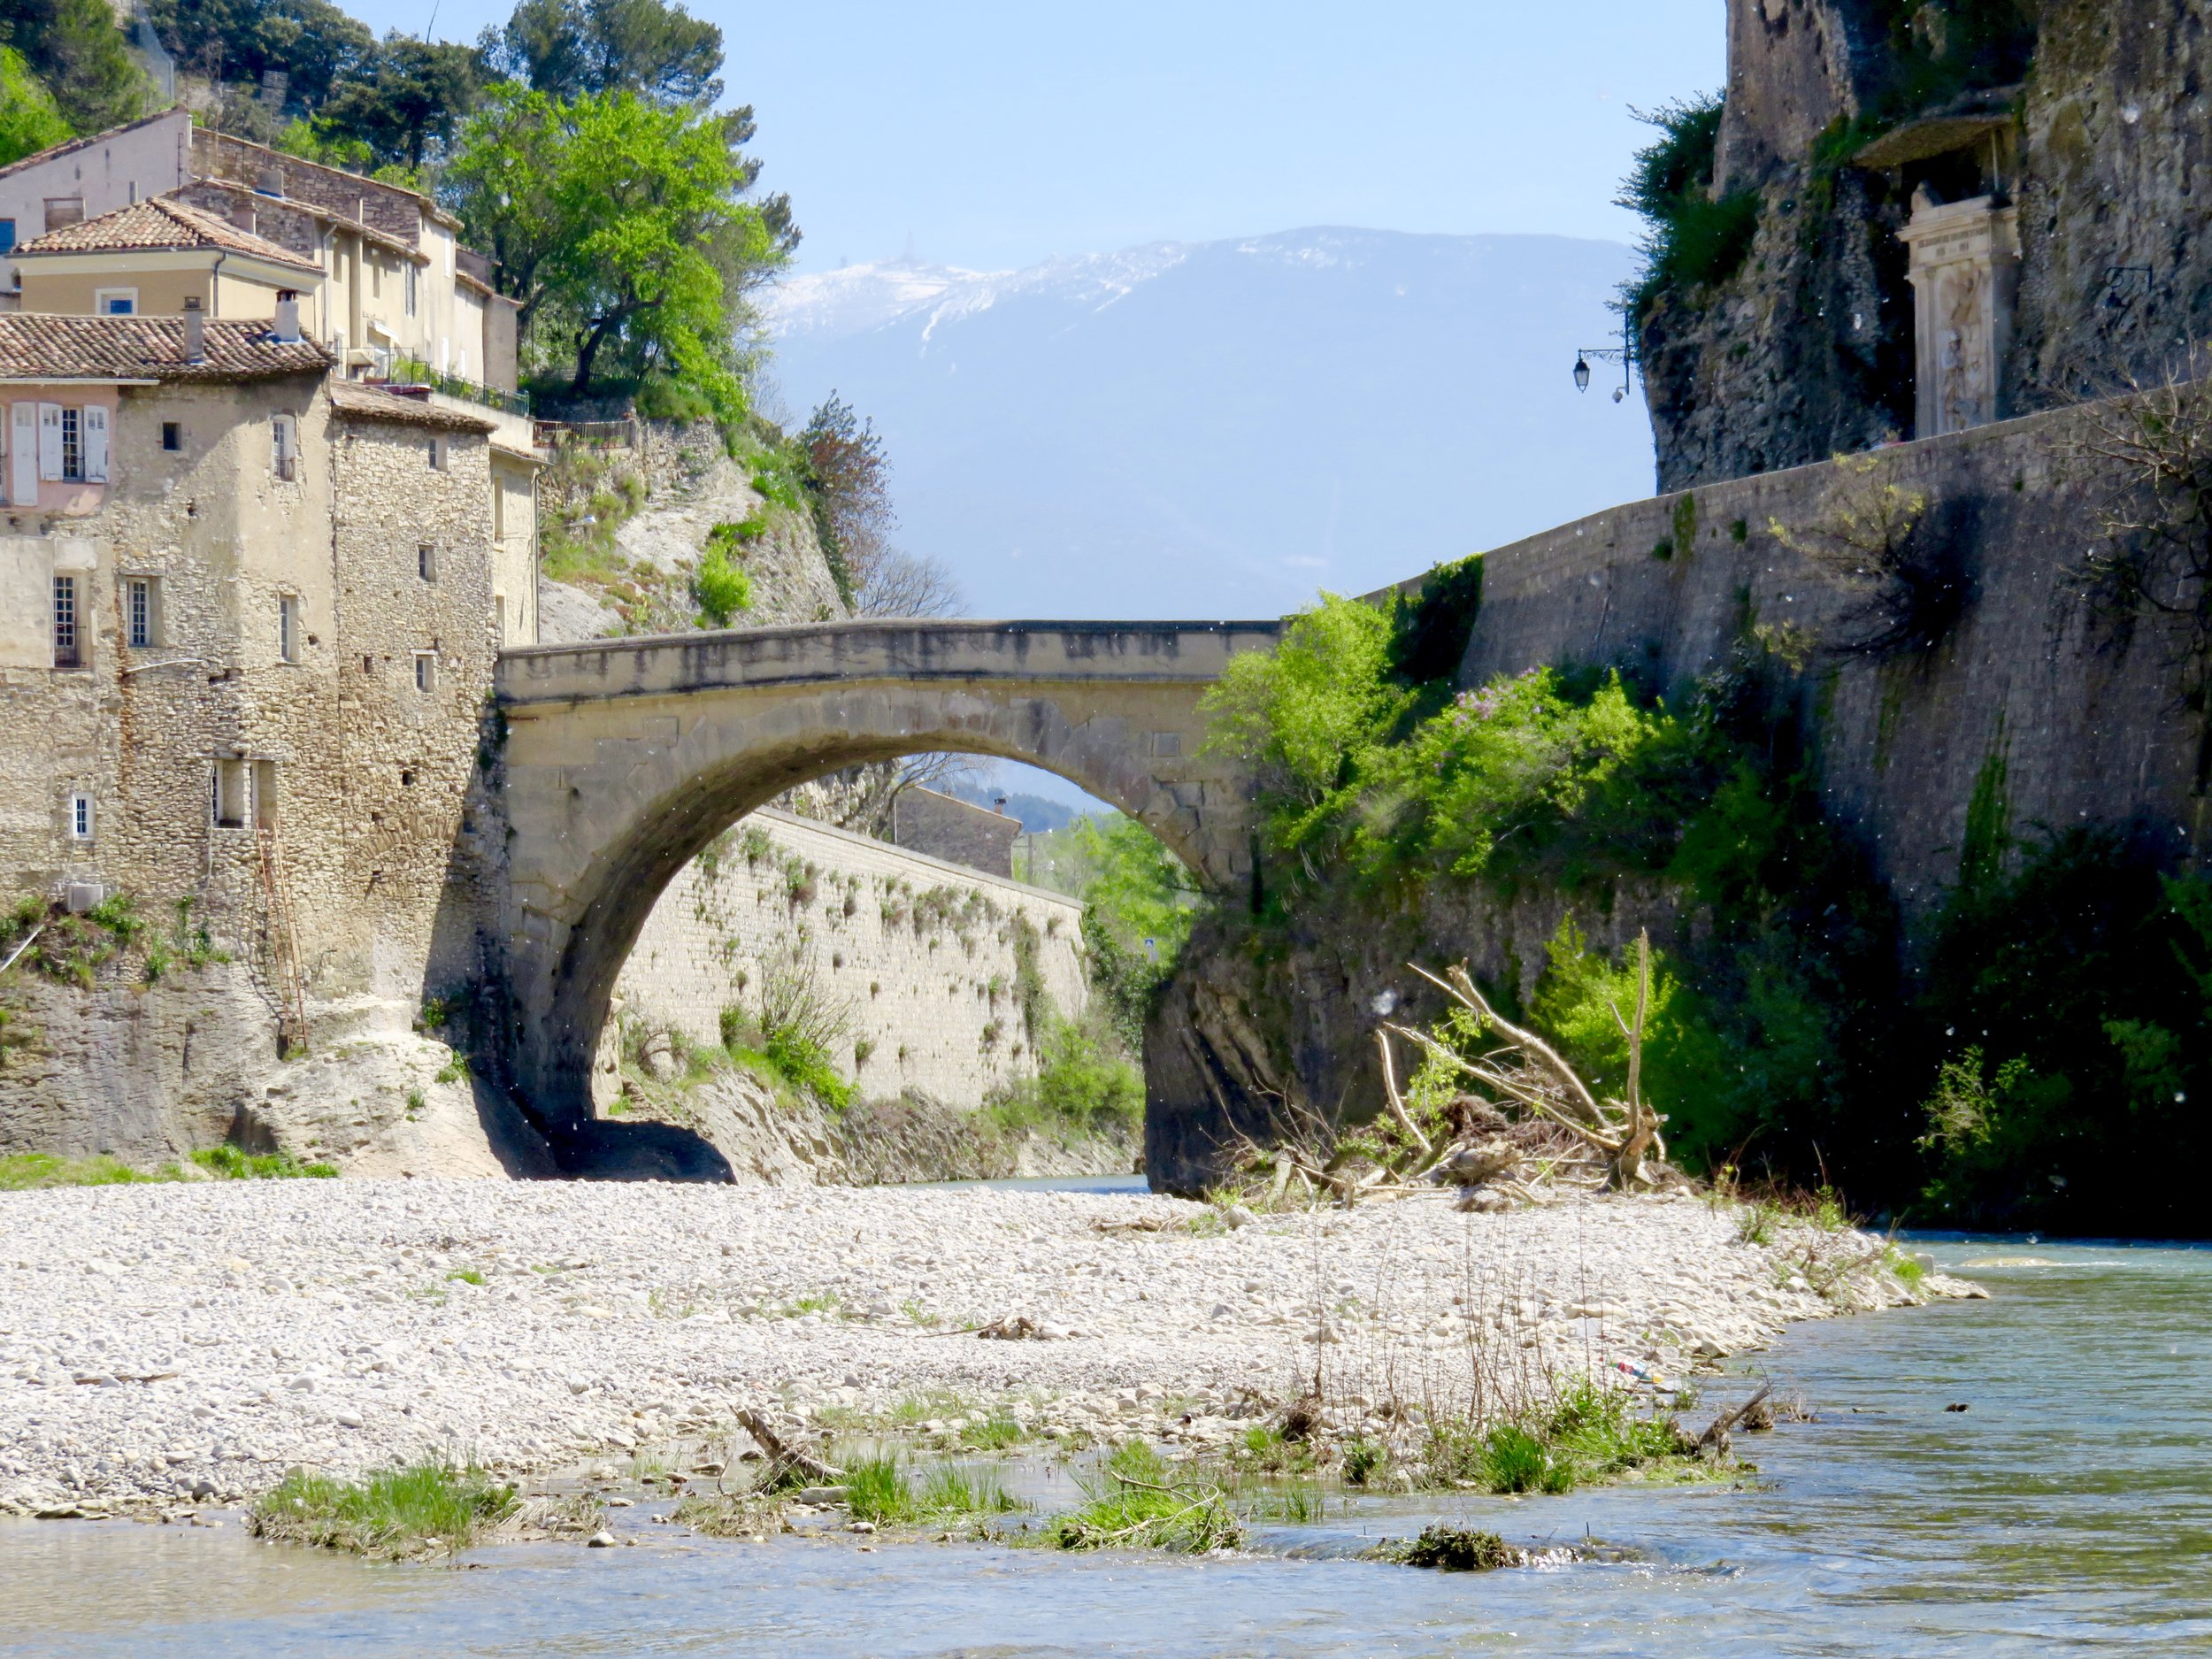 1st century Roman bridge (has survived flooding that swept away more recent bridges)